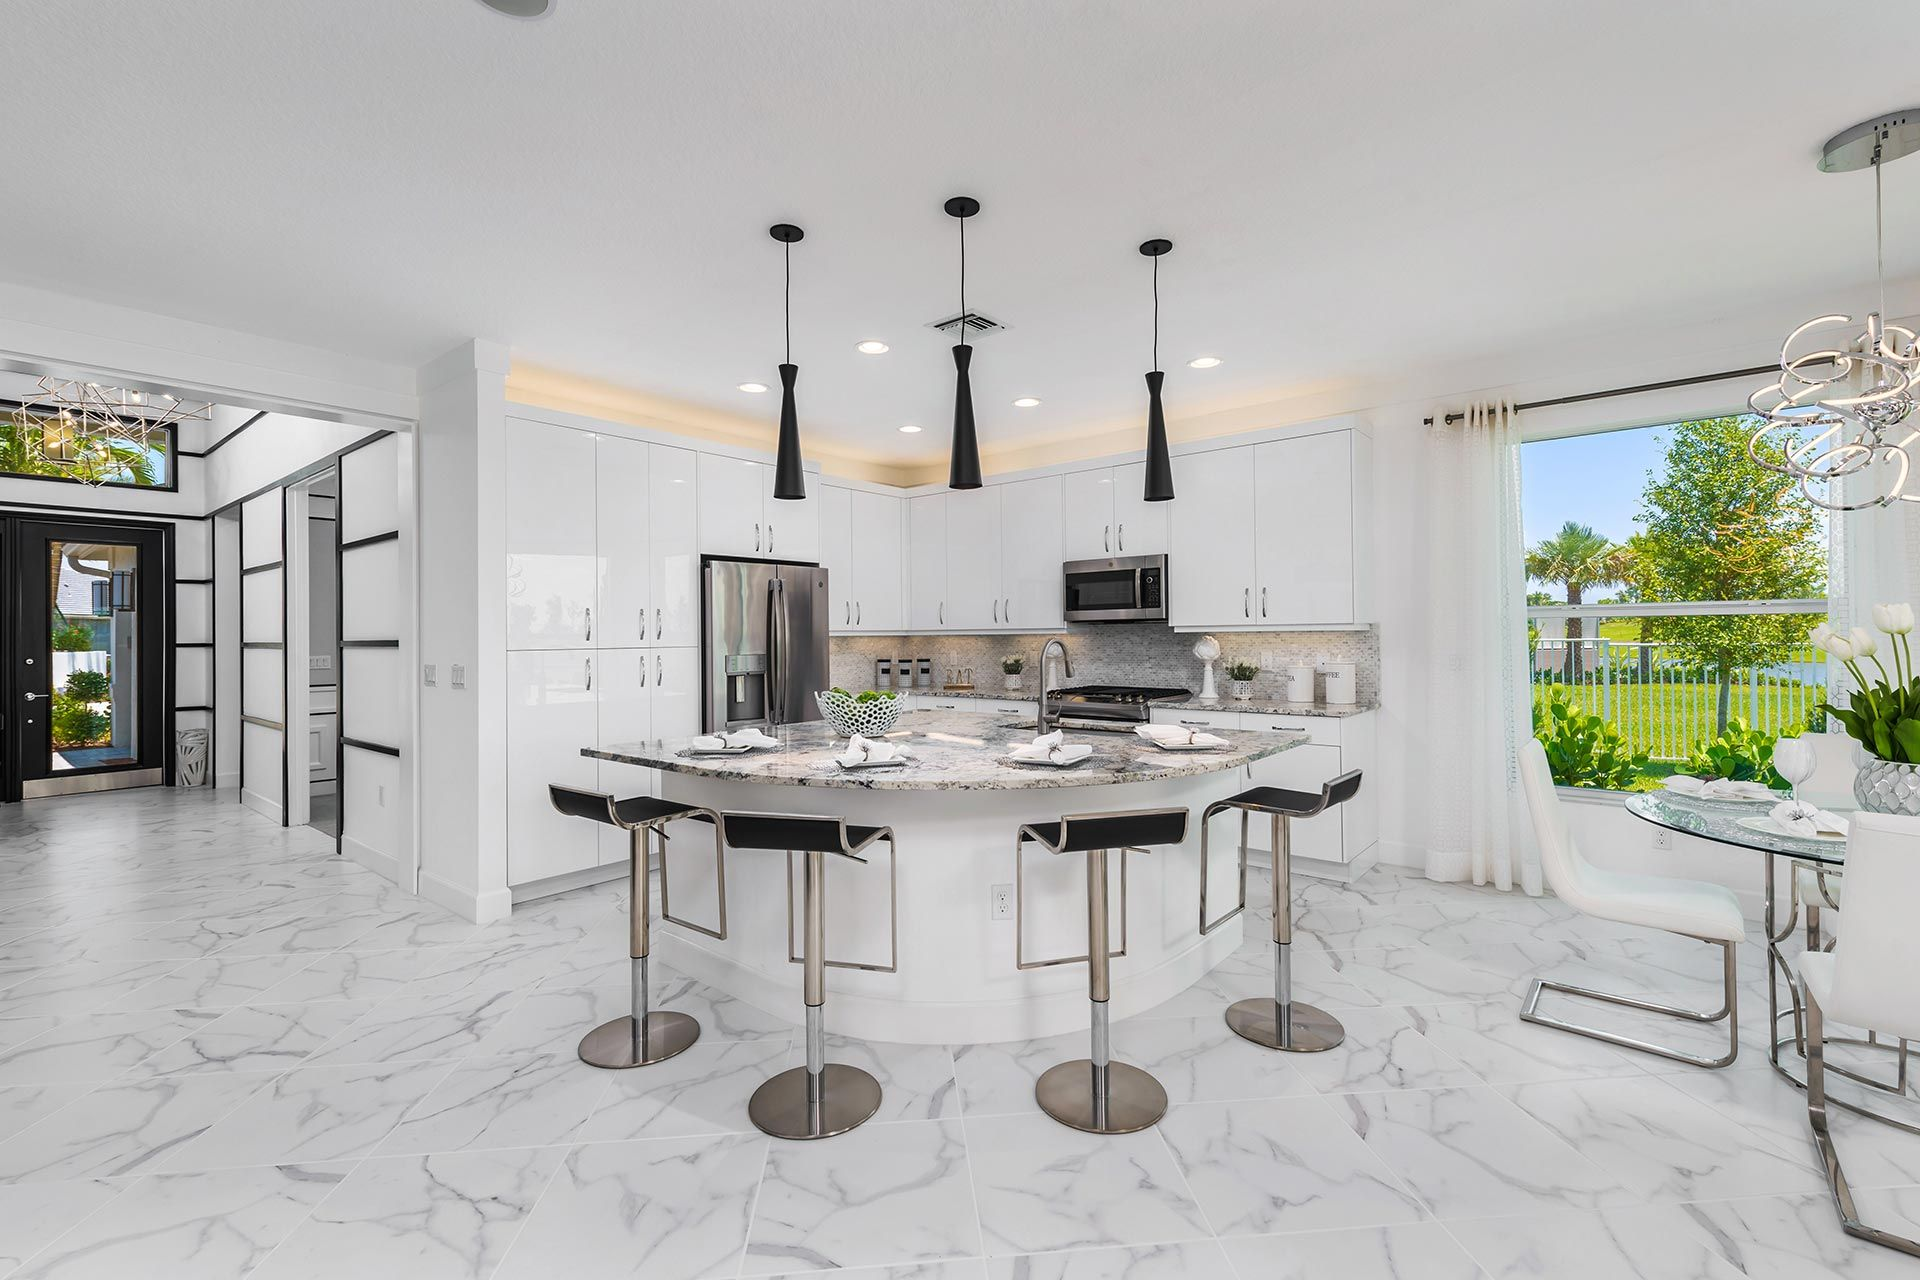 Kitchen featured in the Atlantica By GL Homes in Martin-St. Lucie-Okeechobee Counties, FL